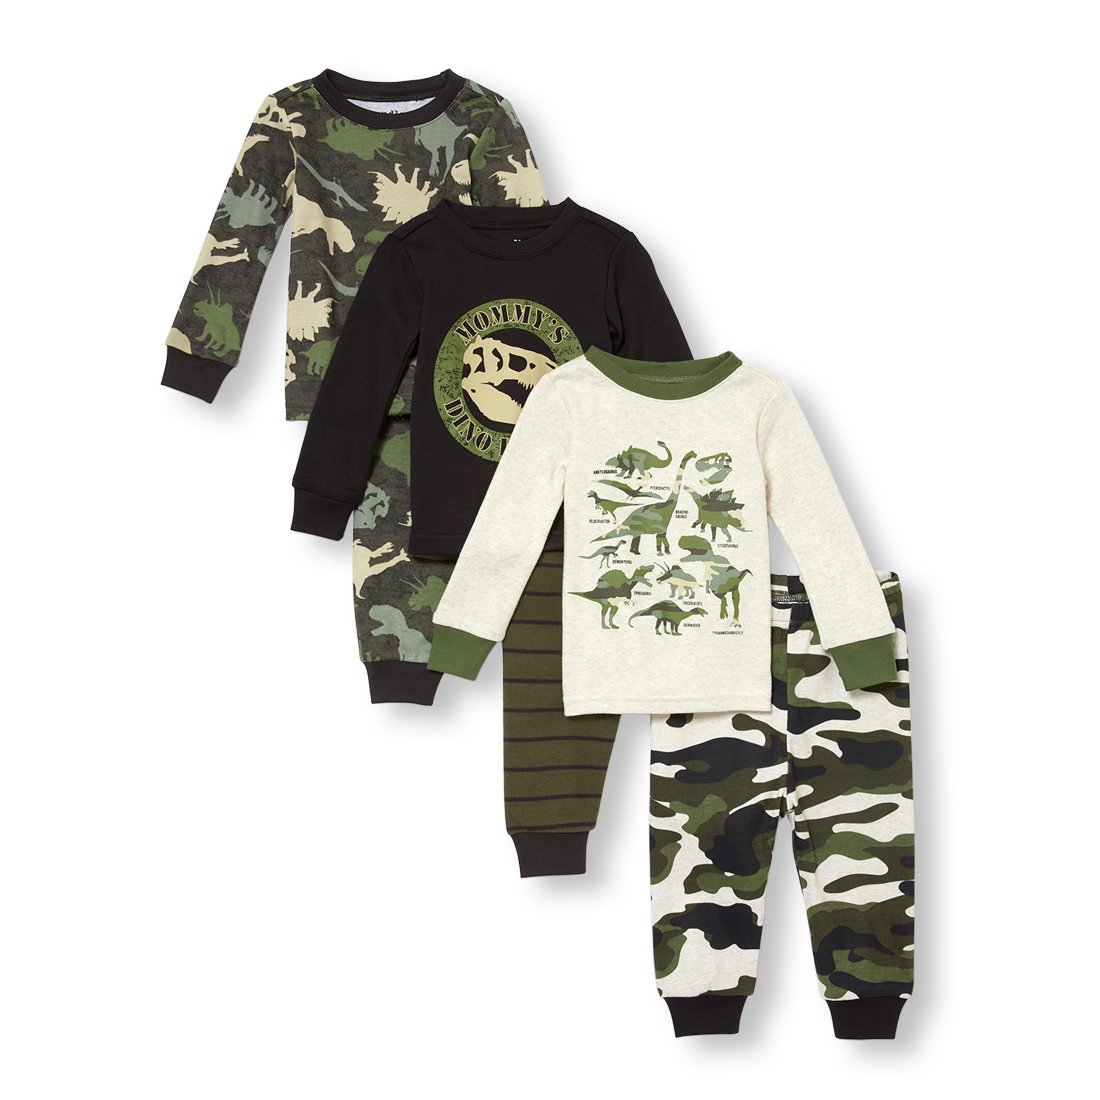 The Children's Place Baby Boys 6 Piece Long Sleeve Pajama Set The Children' s Place